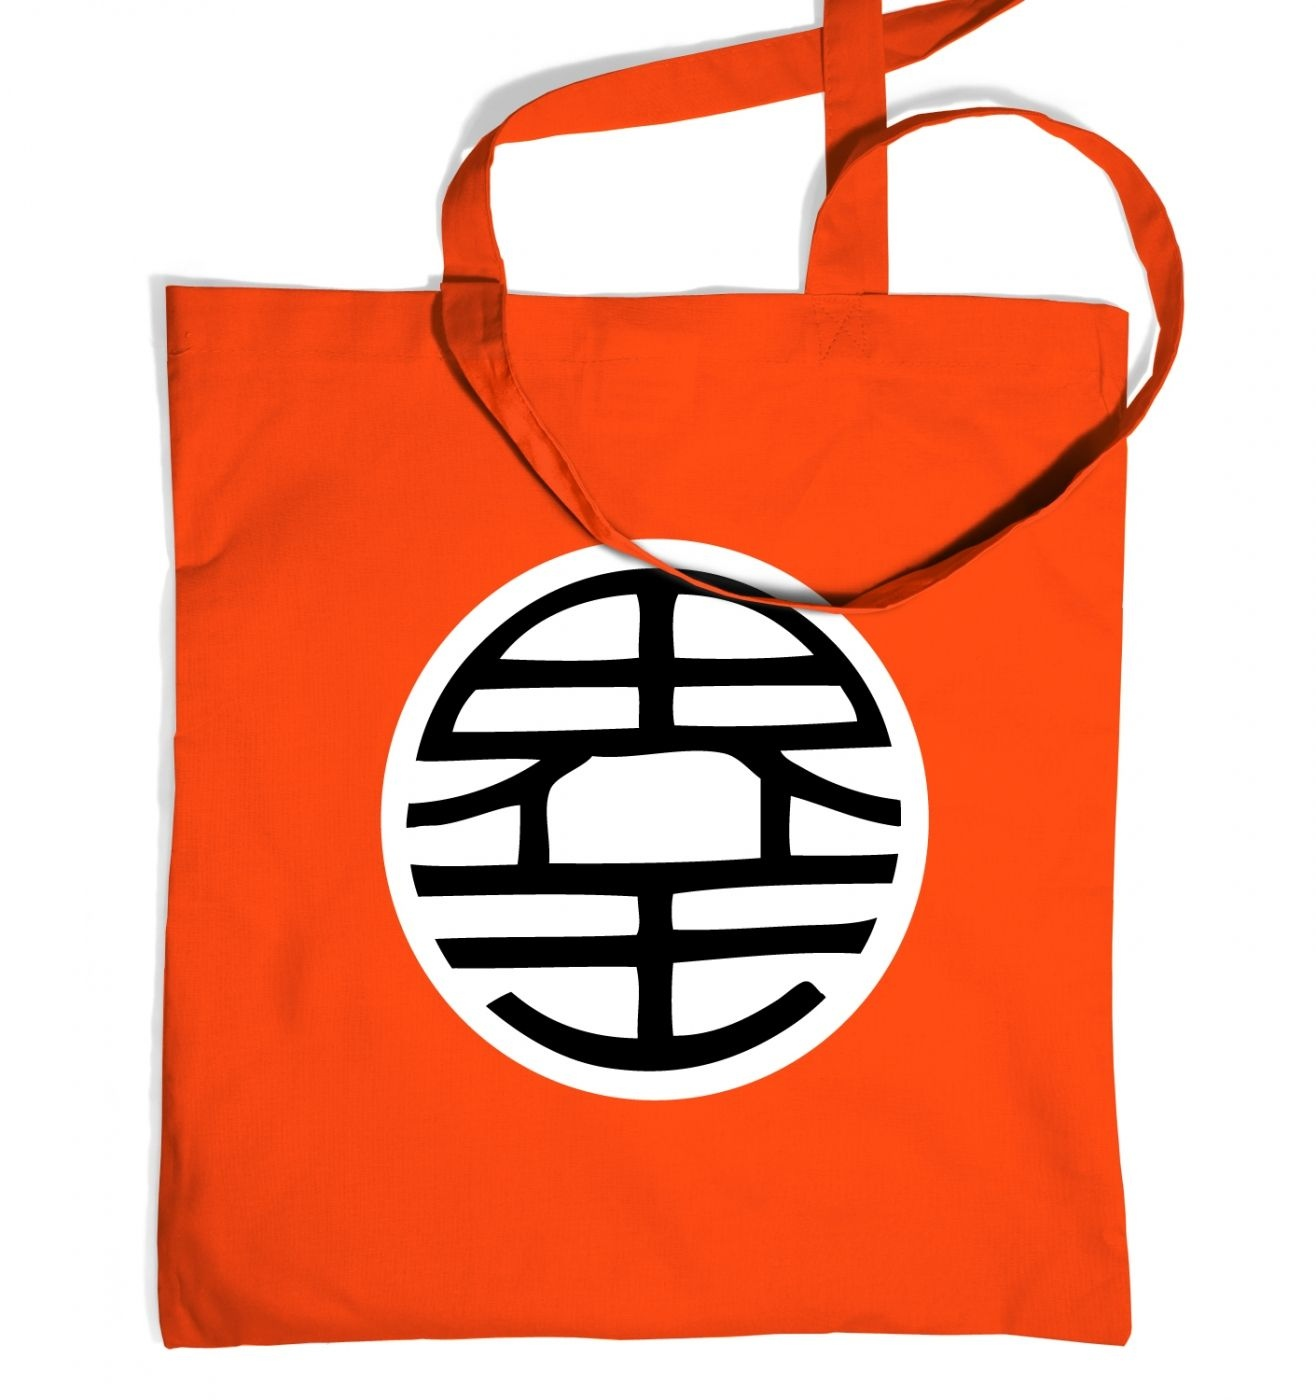 King Kai tote bag